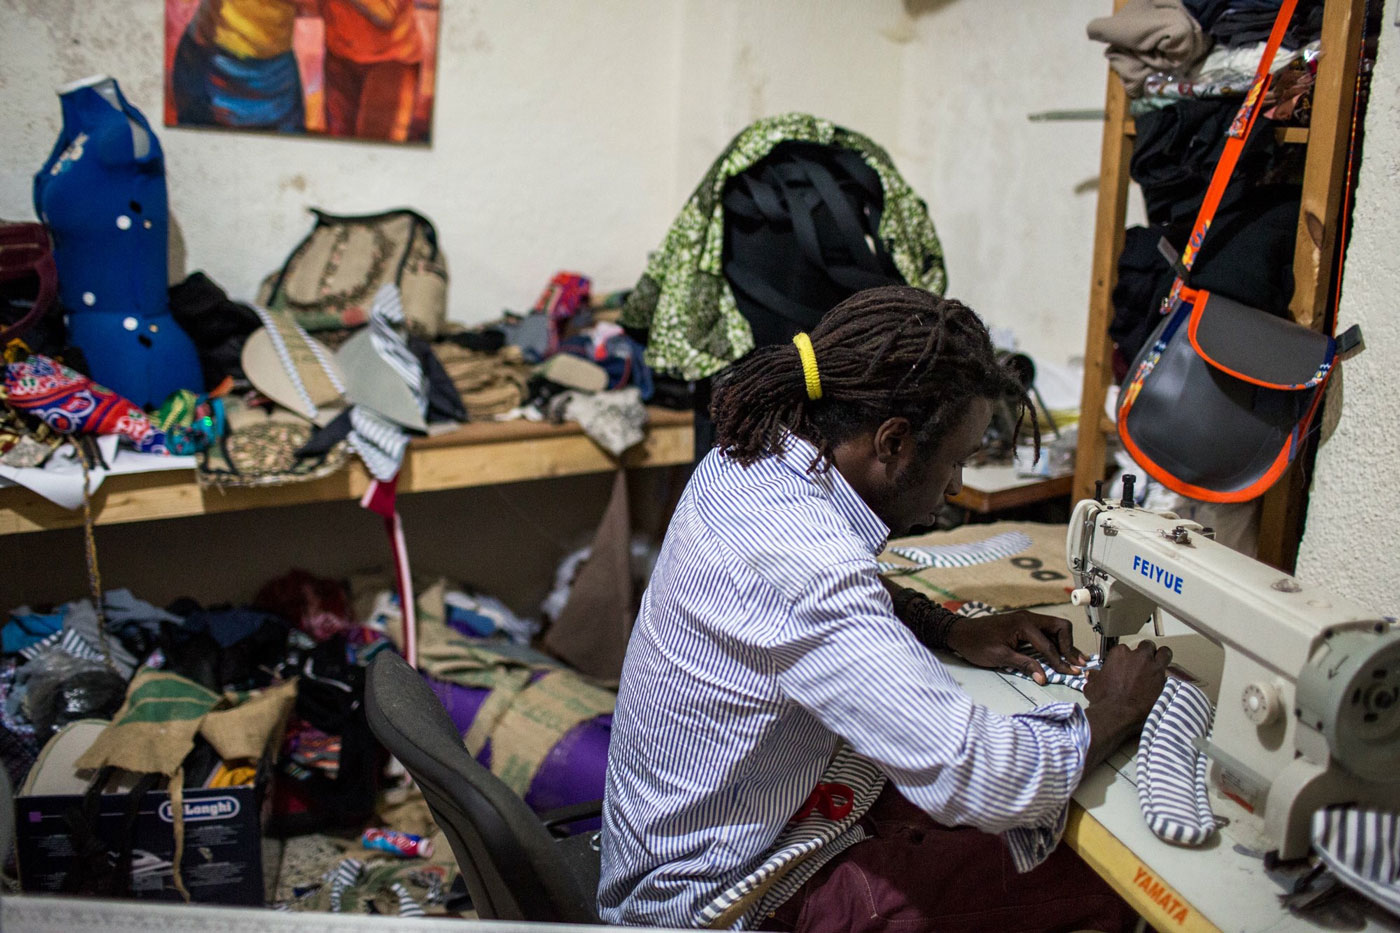 Recycled bags imagined in a refugee camp | The Switchers